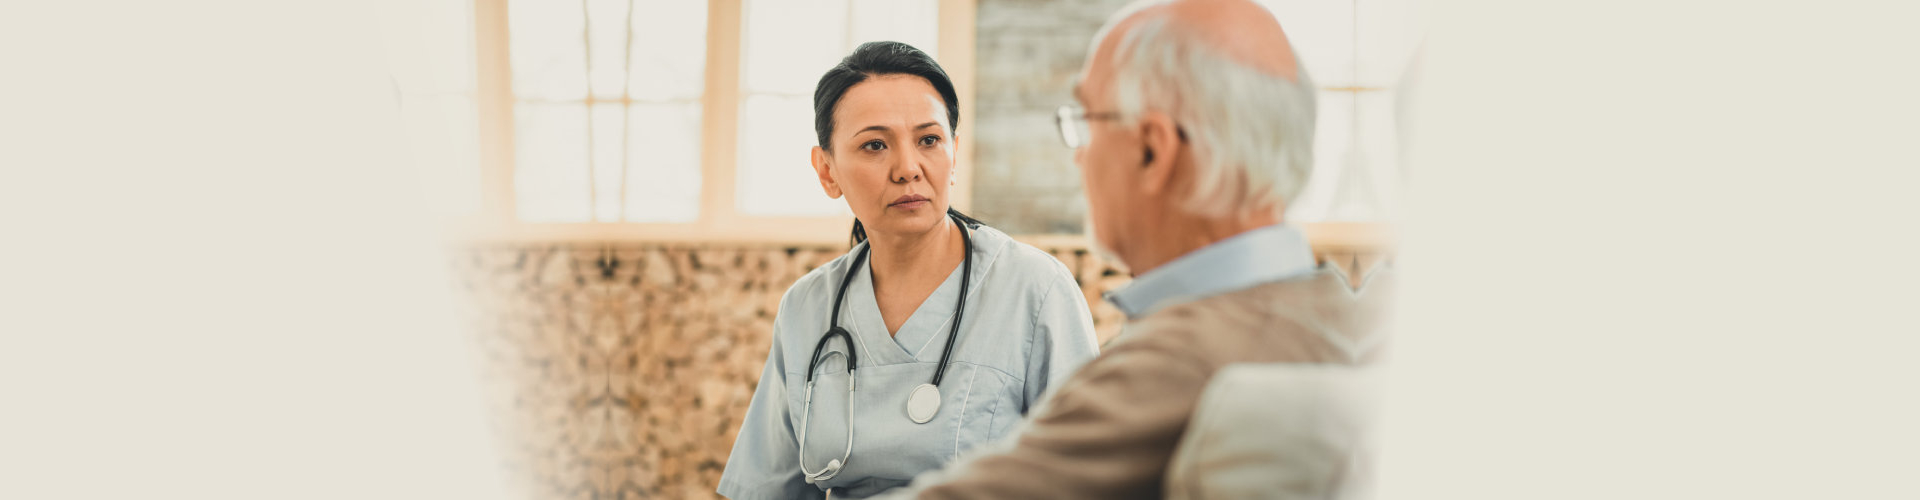 a medical consultant listening to her patient